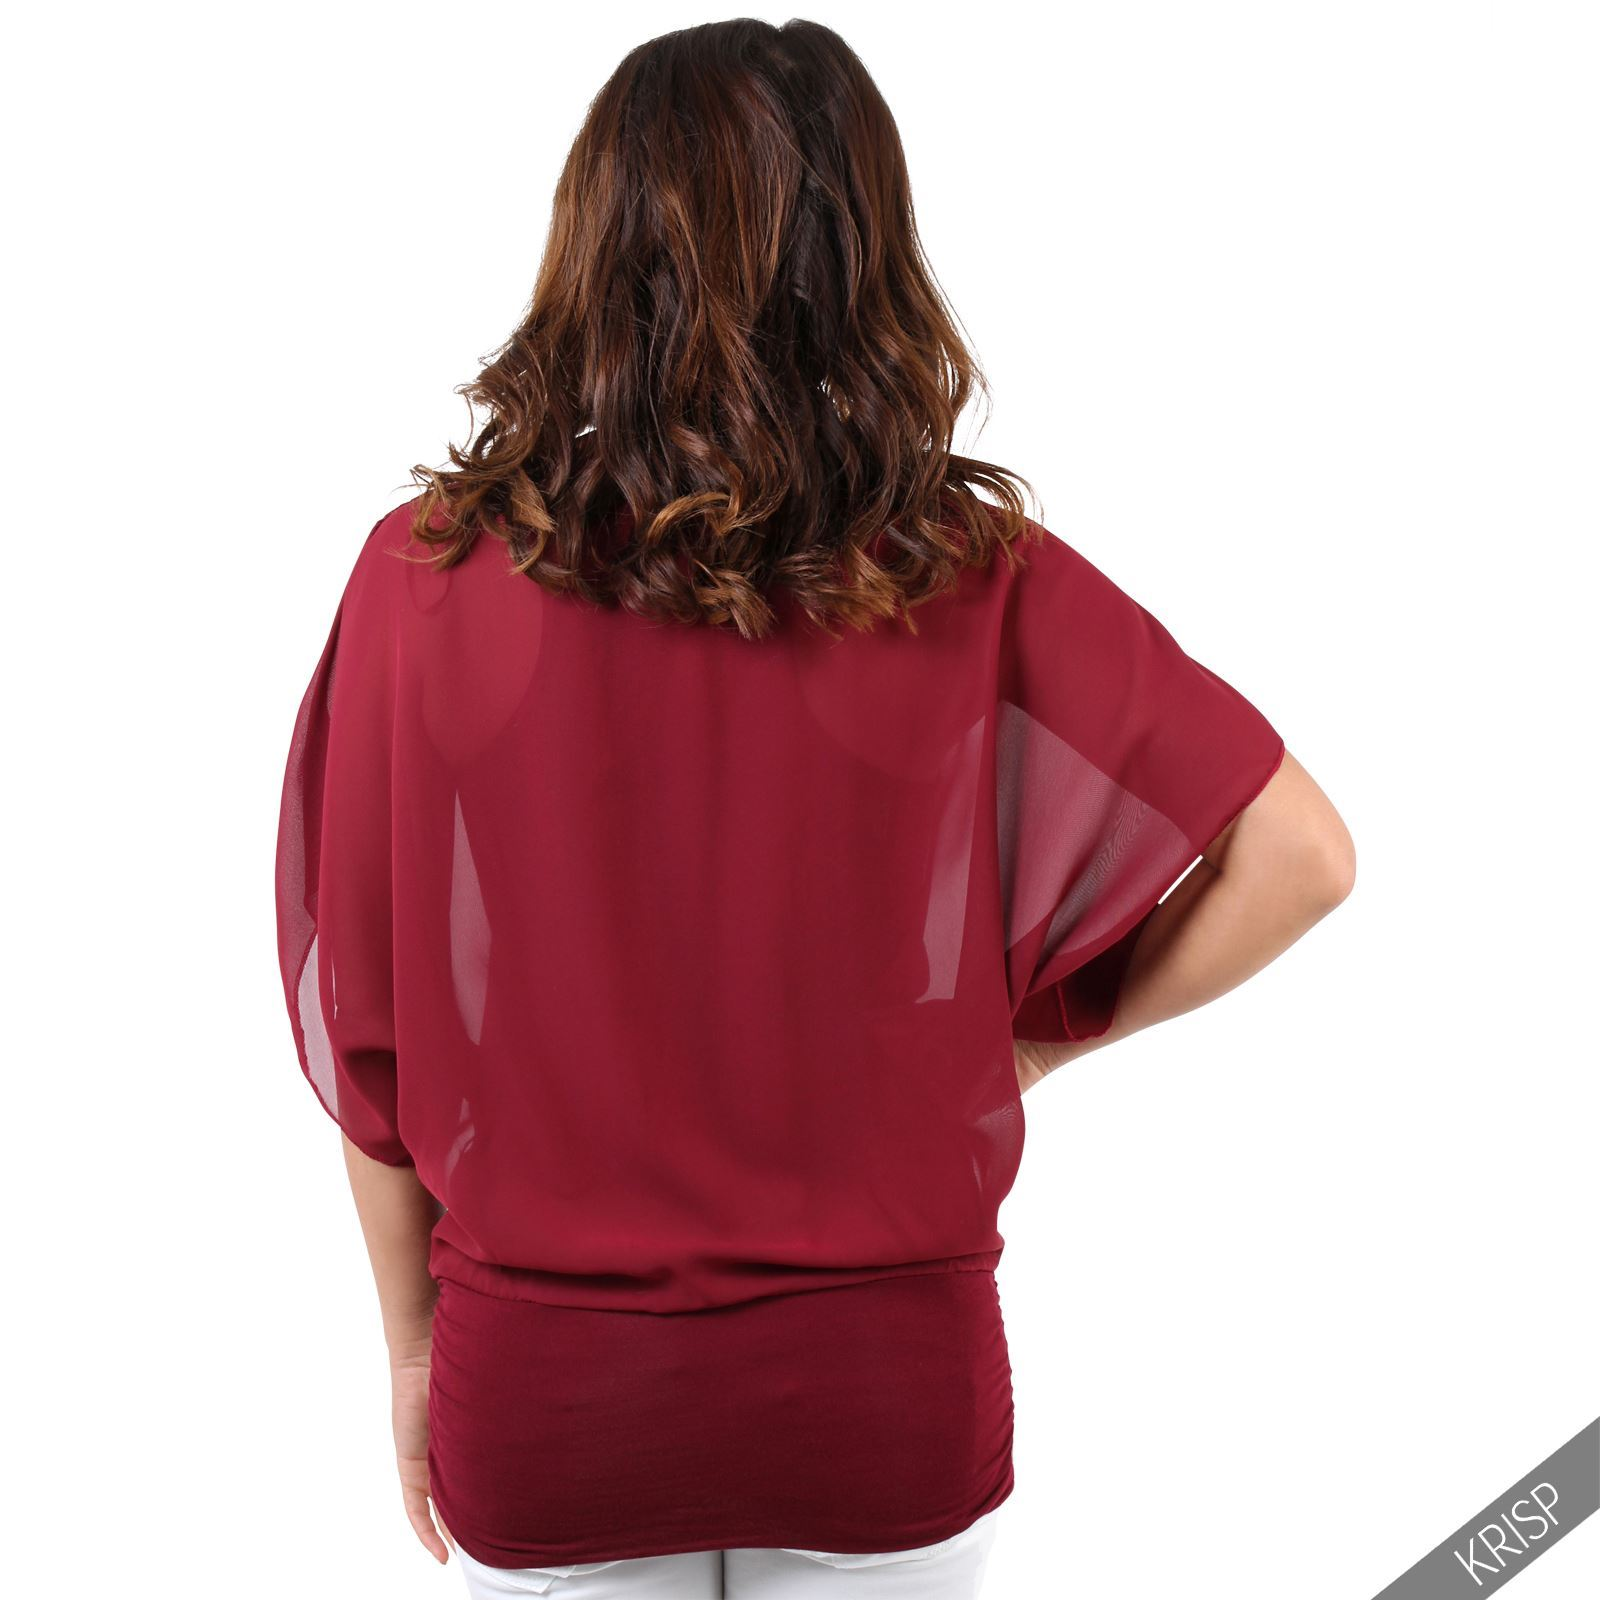 Womens-Scoop-Neck-Blouse-Baggy-Batwing-T-Shirt-Top-Ladies-Oversized-Chiffon-2in1 thumbnail 35